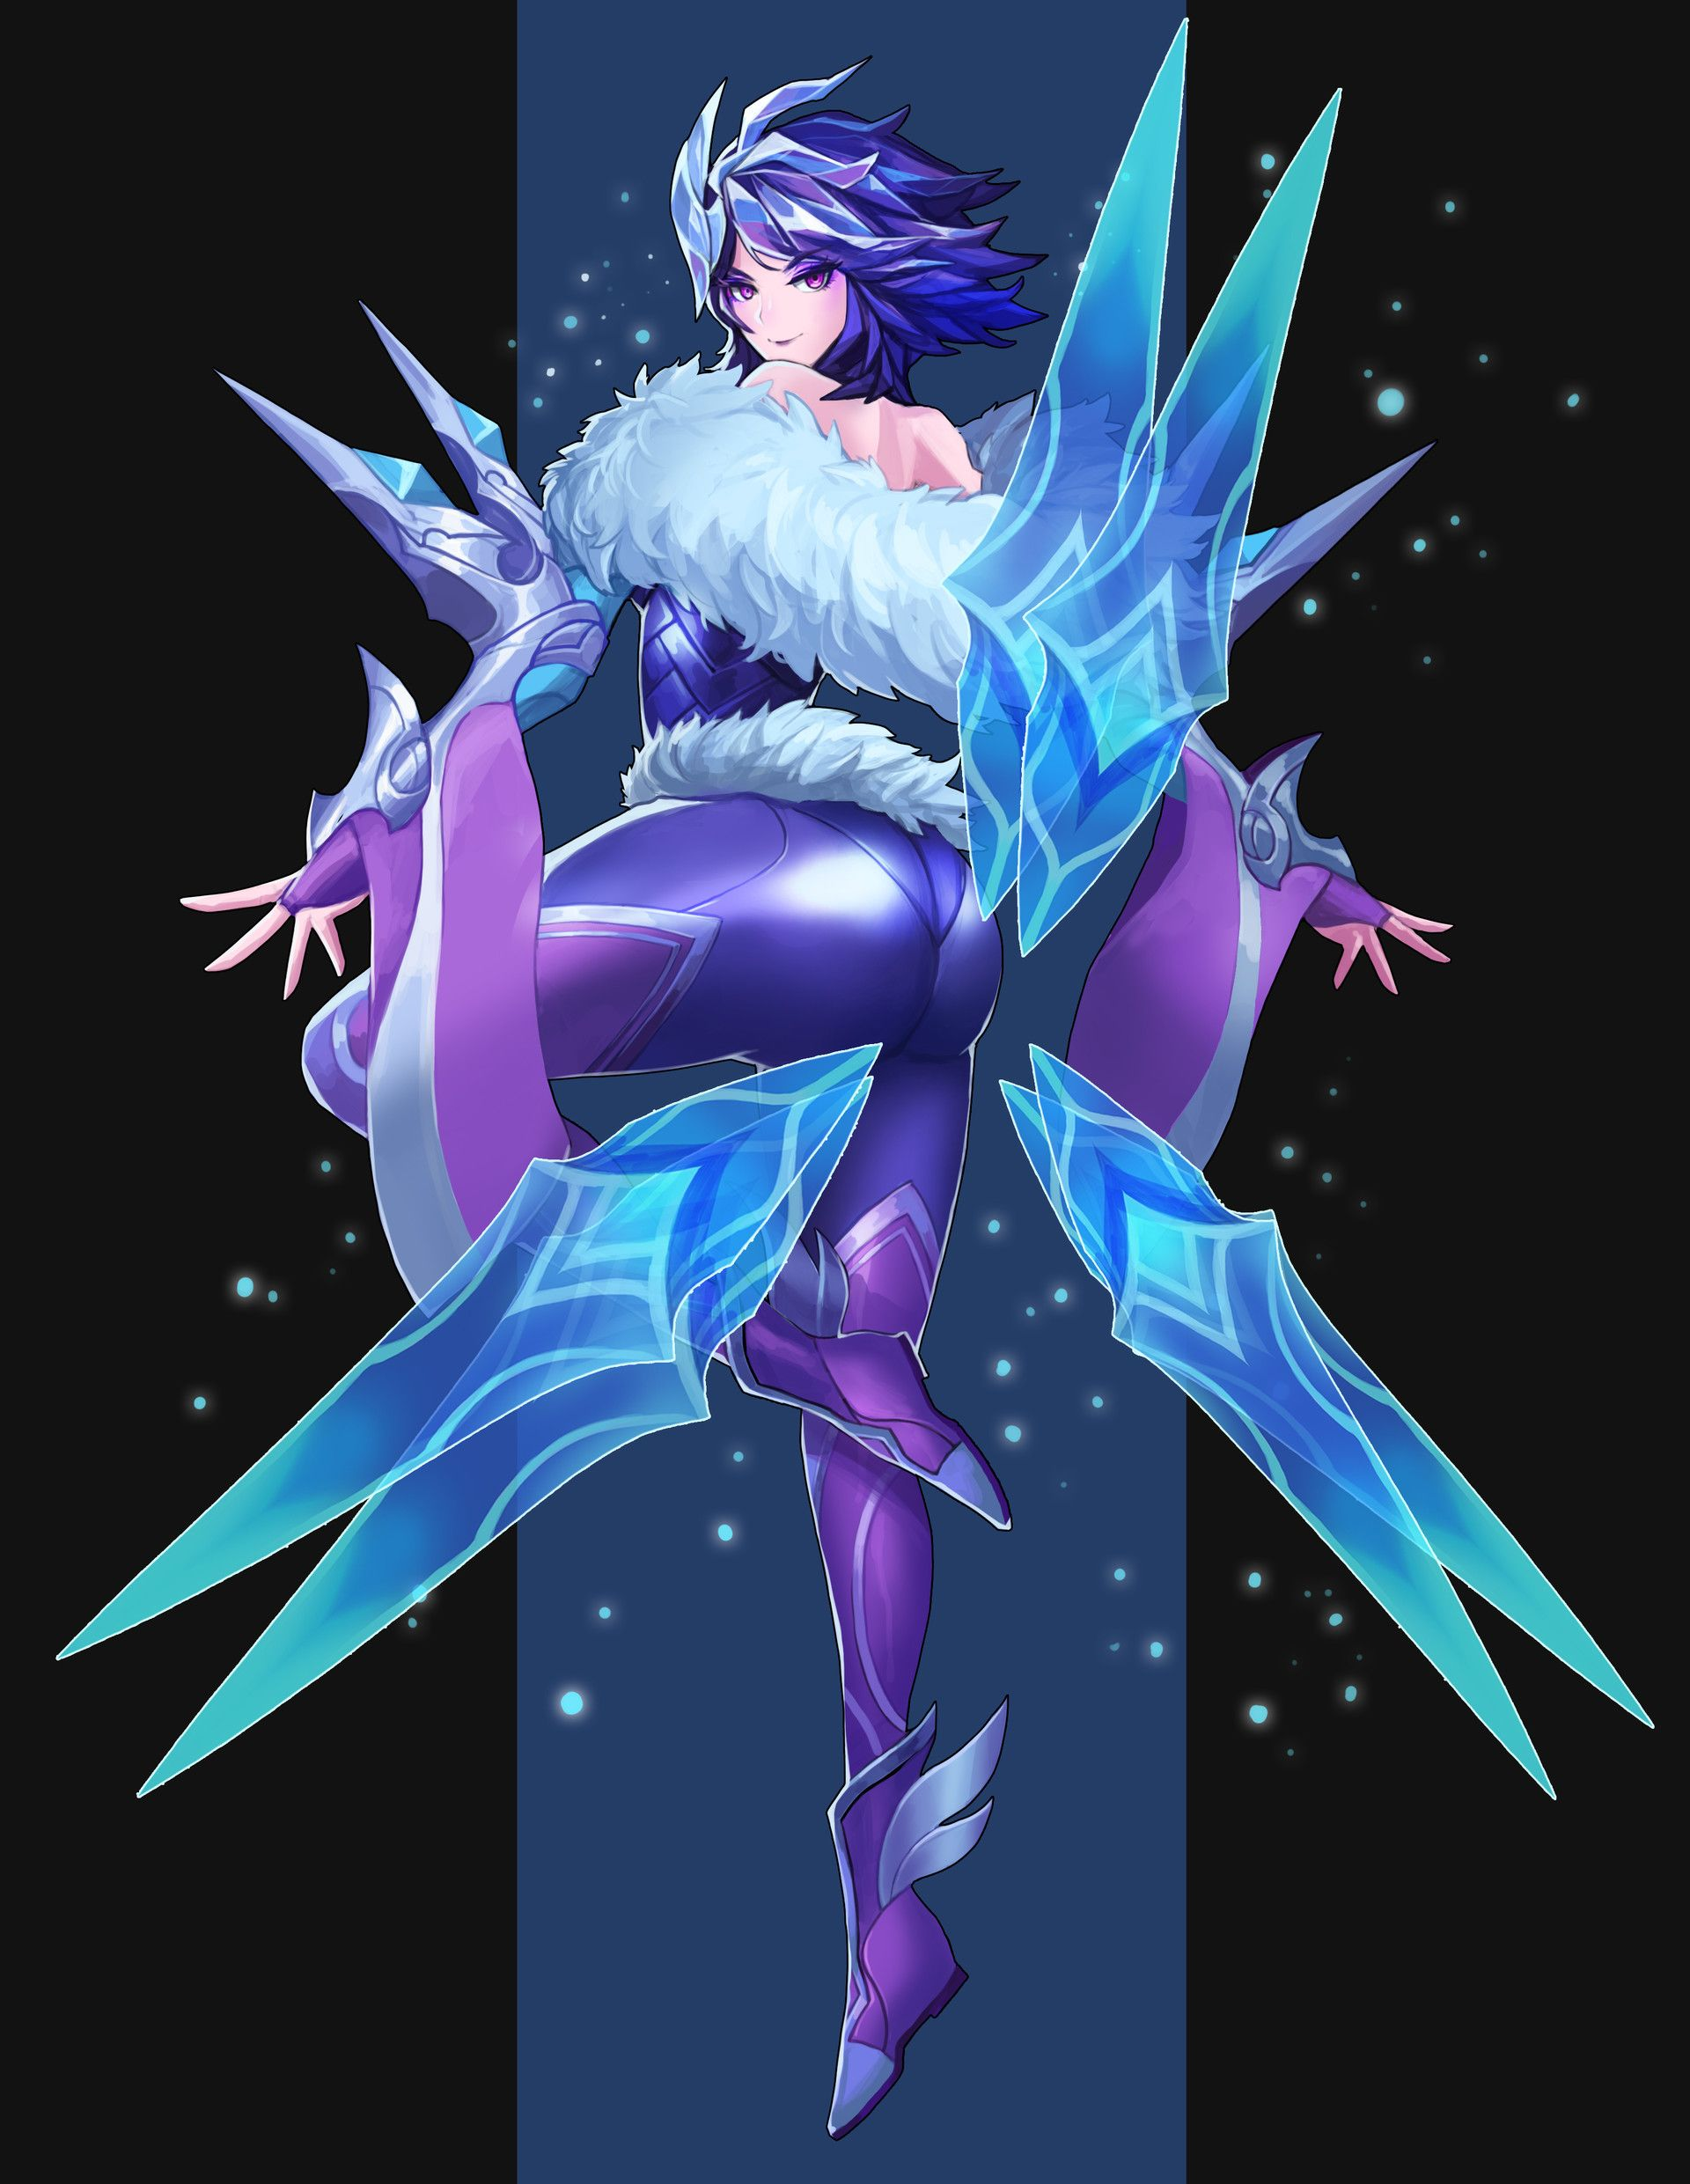 Frostbutt Irelia : frostbutt, irelia, ArtStation, League, Legend, Frostblade, Irelia, Fanart,, Legends, Poppy,, Legends,, Characters